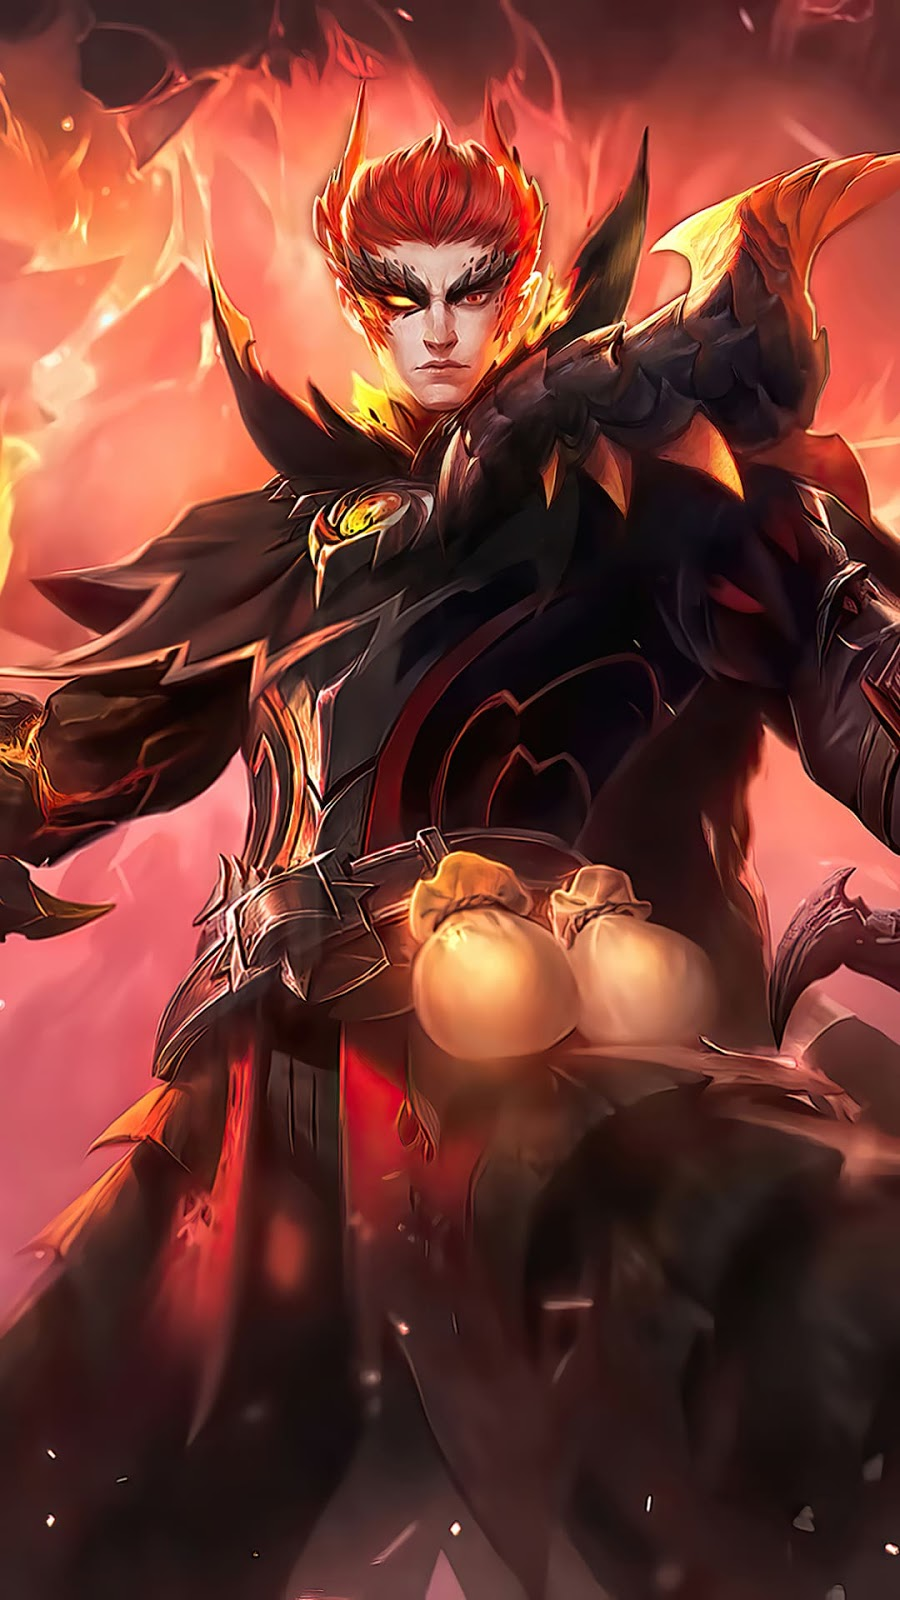 Wallpaper Valir Draconic Flame Skin Mobile Legends HD for Android and iOS